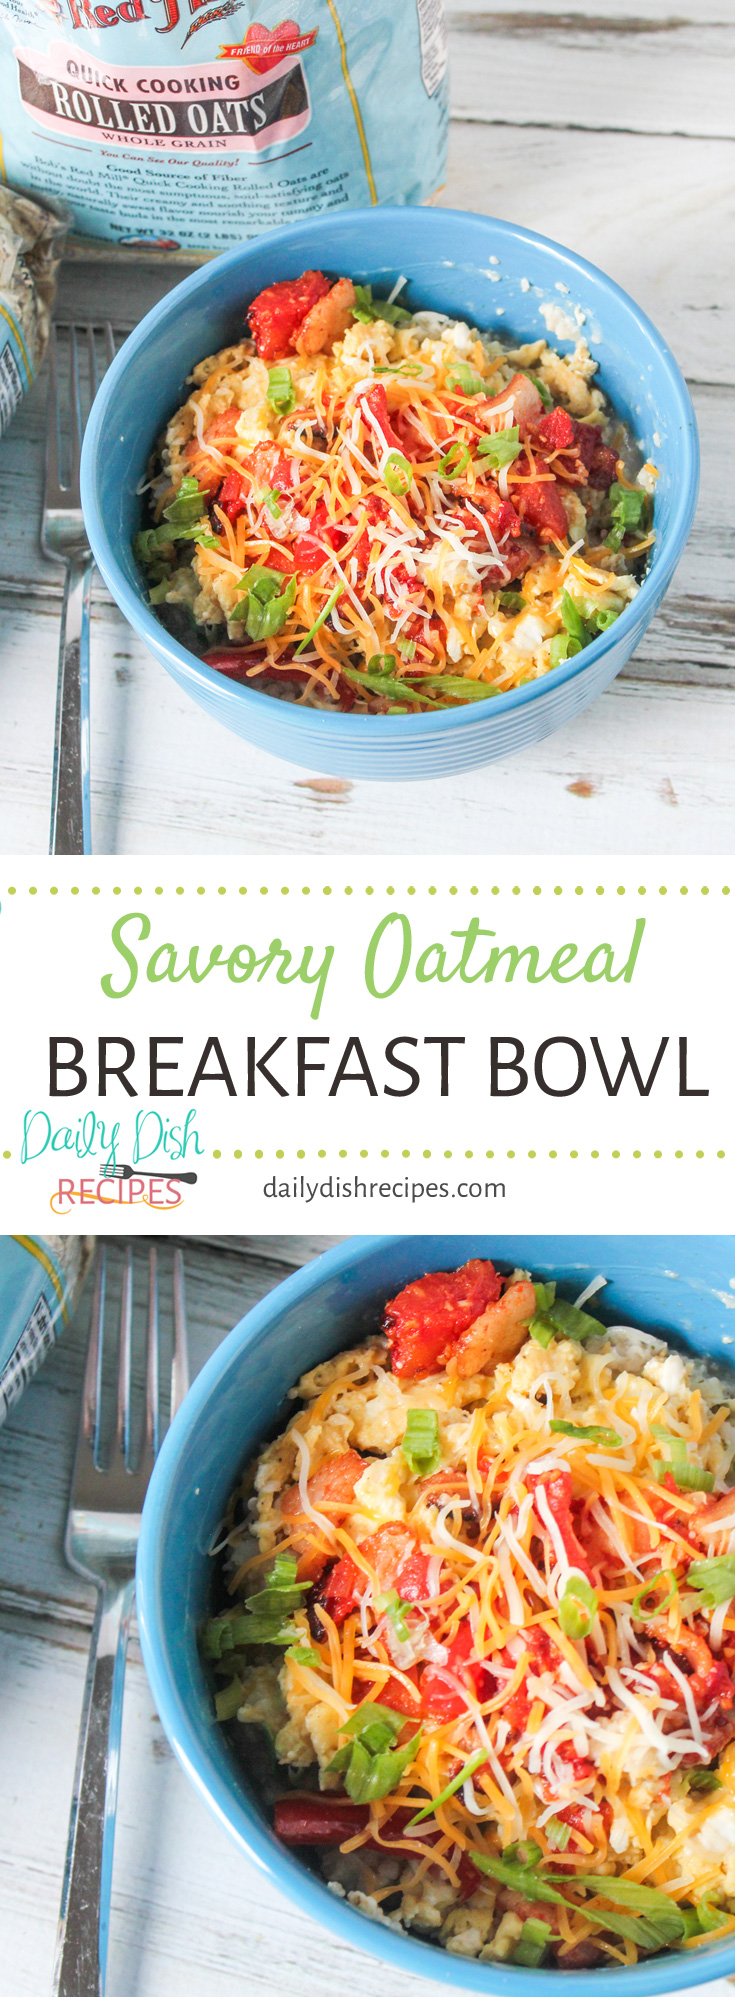 Loaded with tons of fresh and delicious ingredients, this Savory Oatmeal Breakfast Bowl proves that oatmeal isn't just for sweet things. Change and customize this breakfast bowl to be what you and your family love.